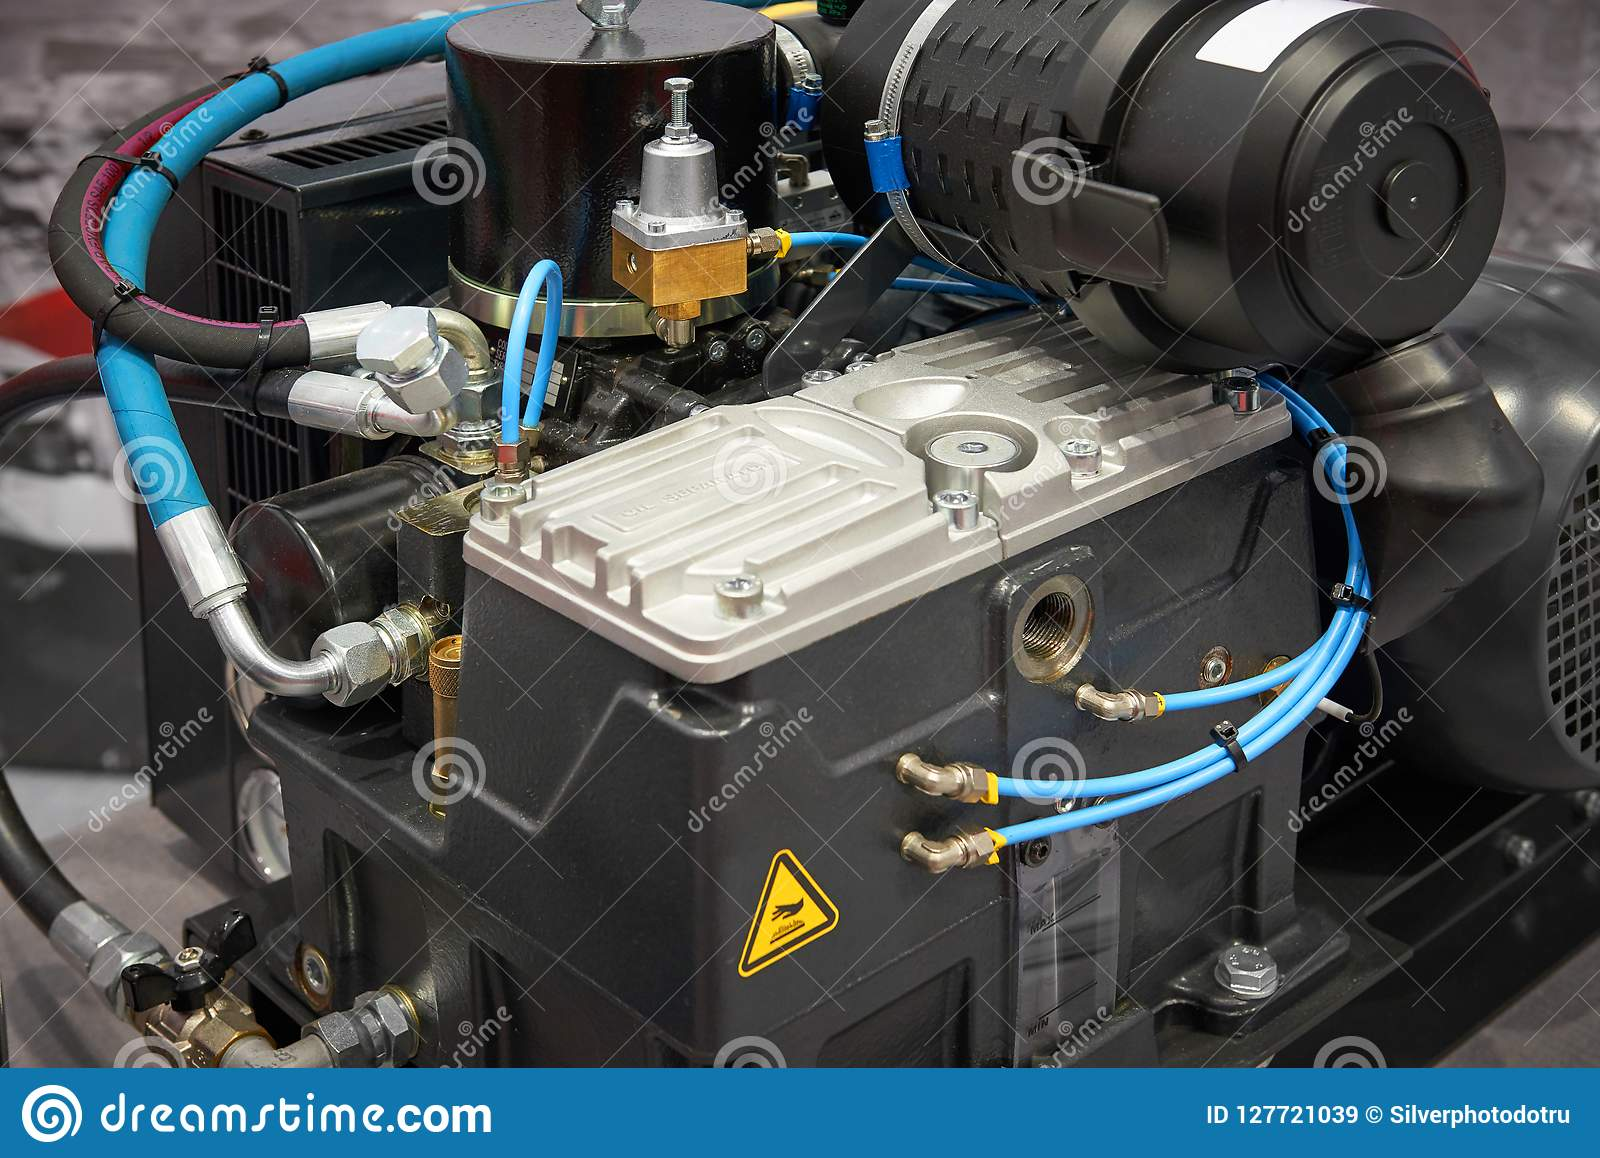 Close up view on clean new air compressor with electric motor, filter, rubber hoses, pneumatic and hydraulic components. Turbo com